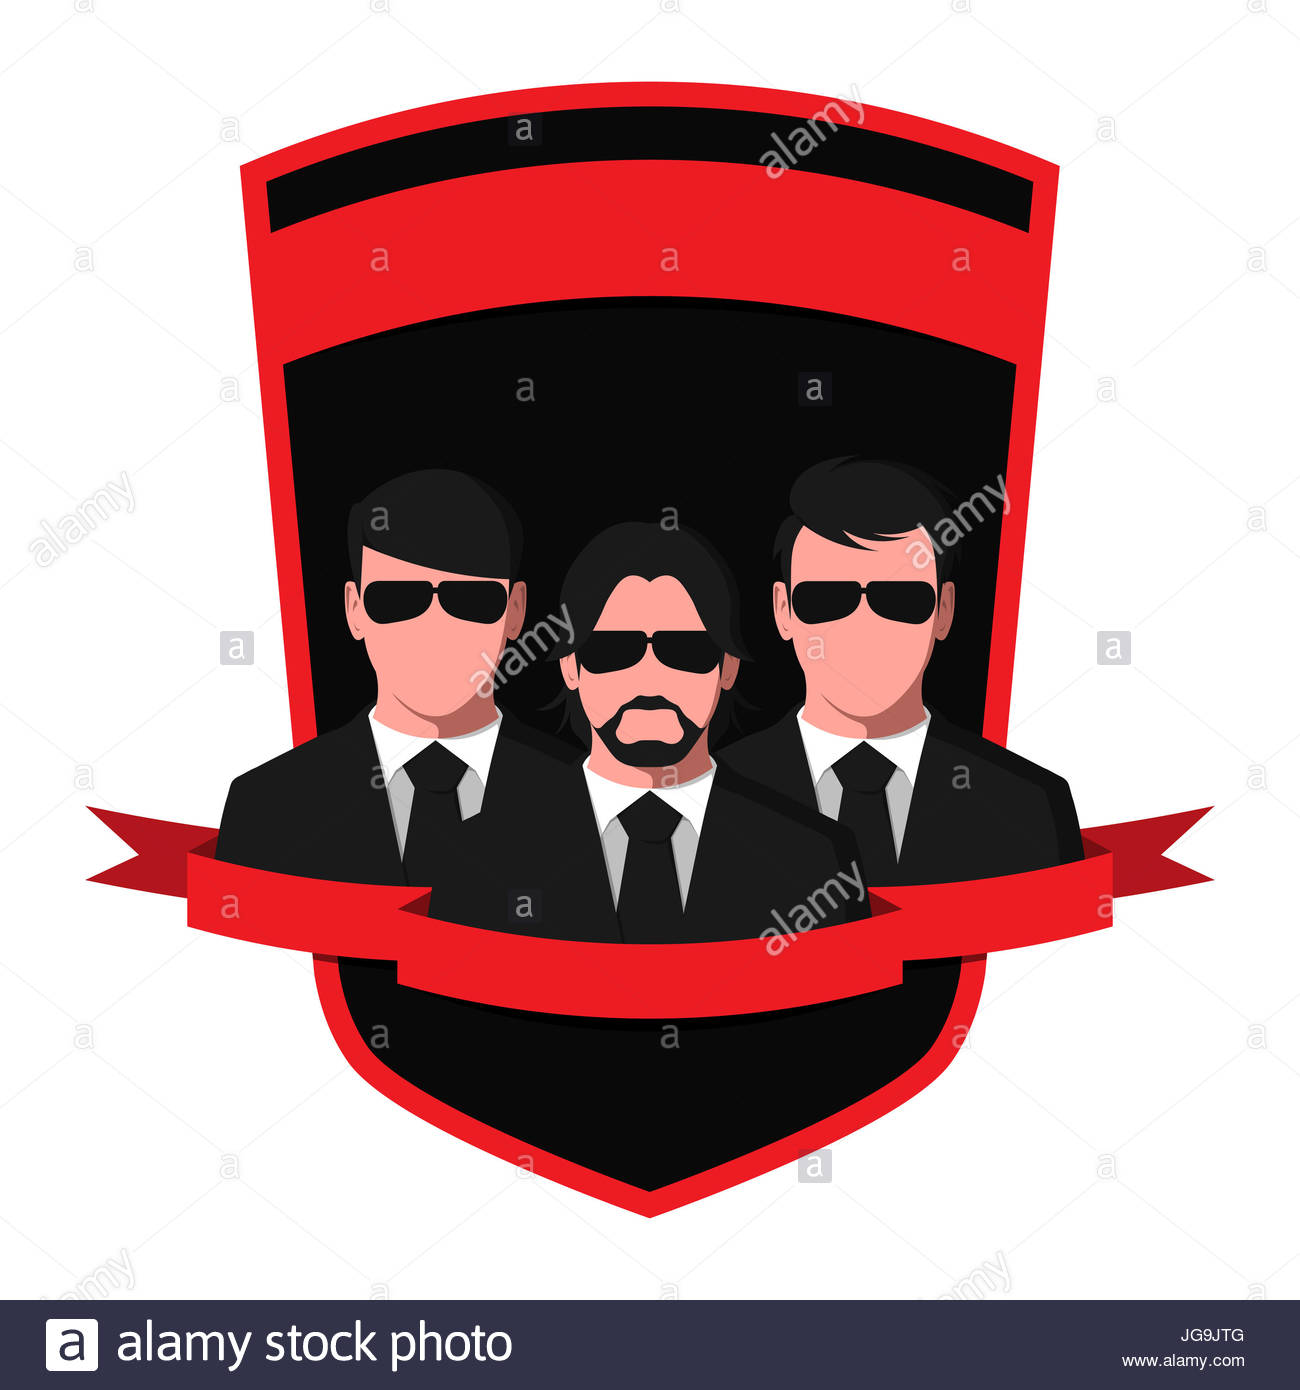 Silhouettes of people in black suits and glasses. Emblem of a detective agency isolated on white background. Spy - Stock Image